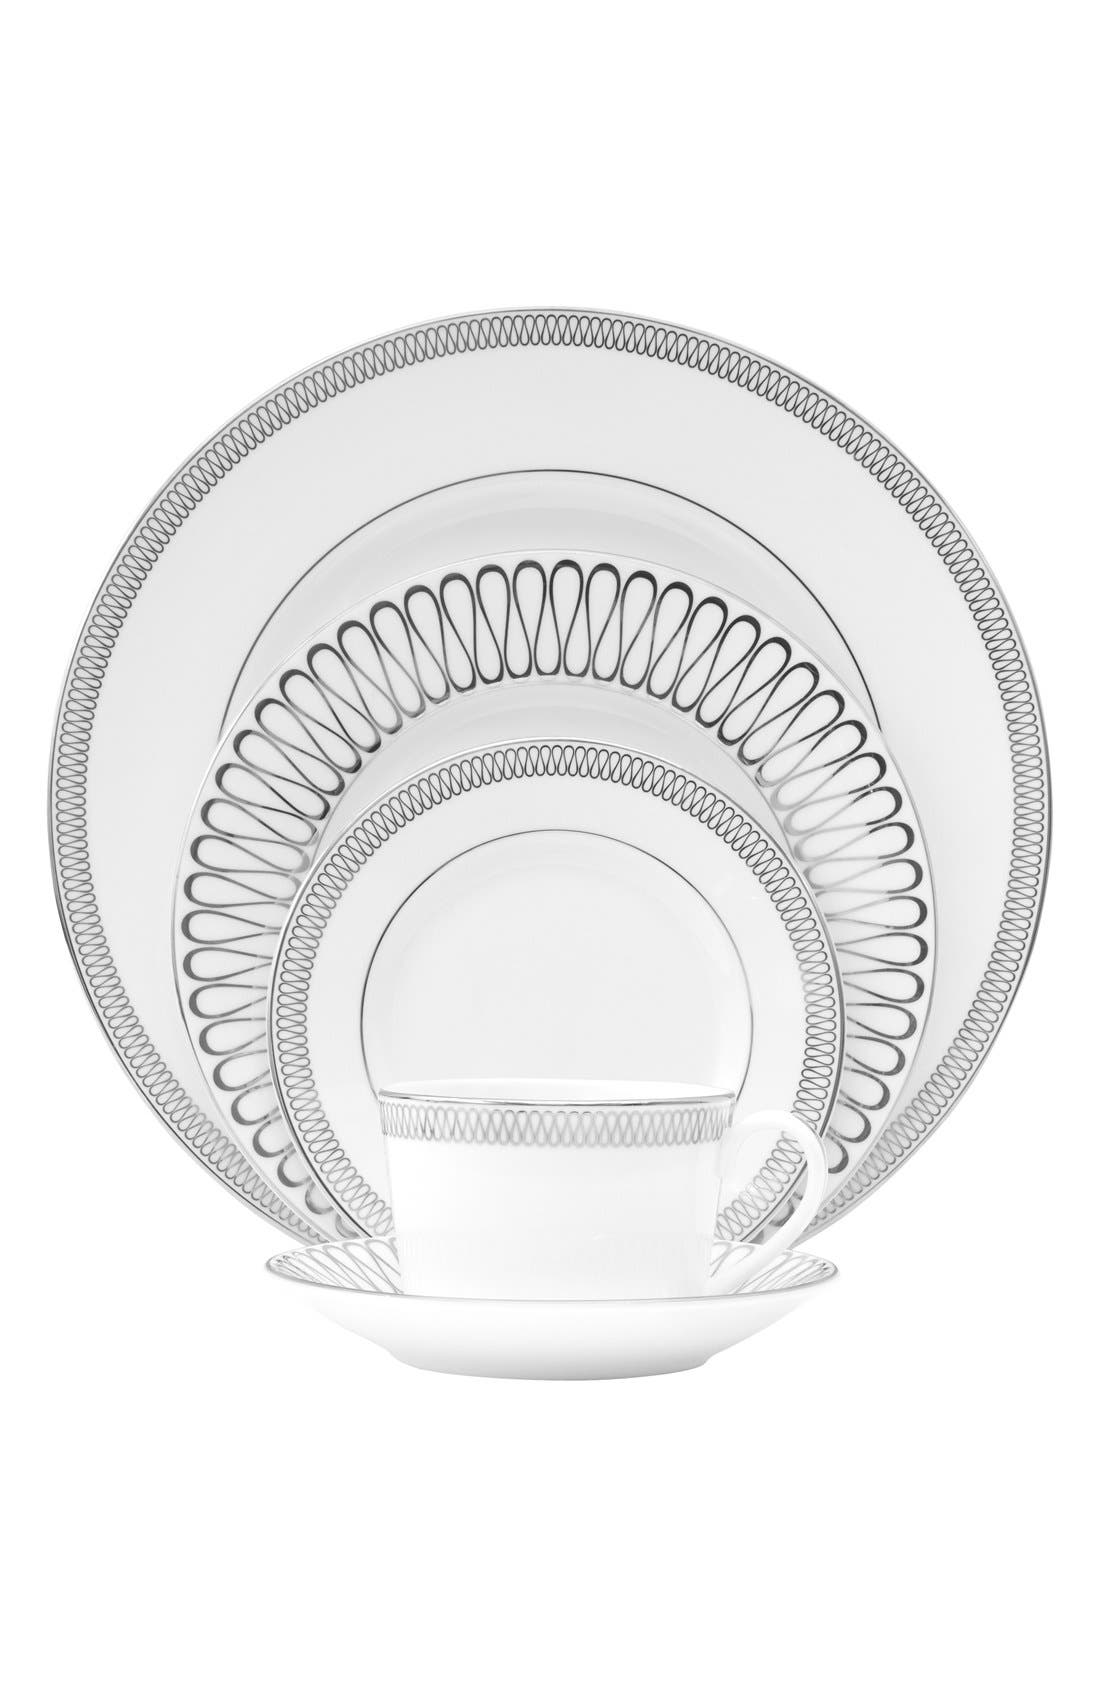 Monique Lhuillier Waterford 'Opulence' 5-Piece China Place Setting